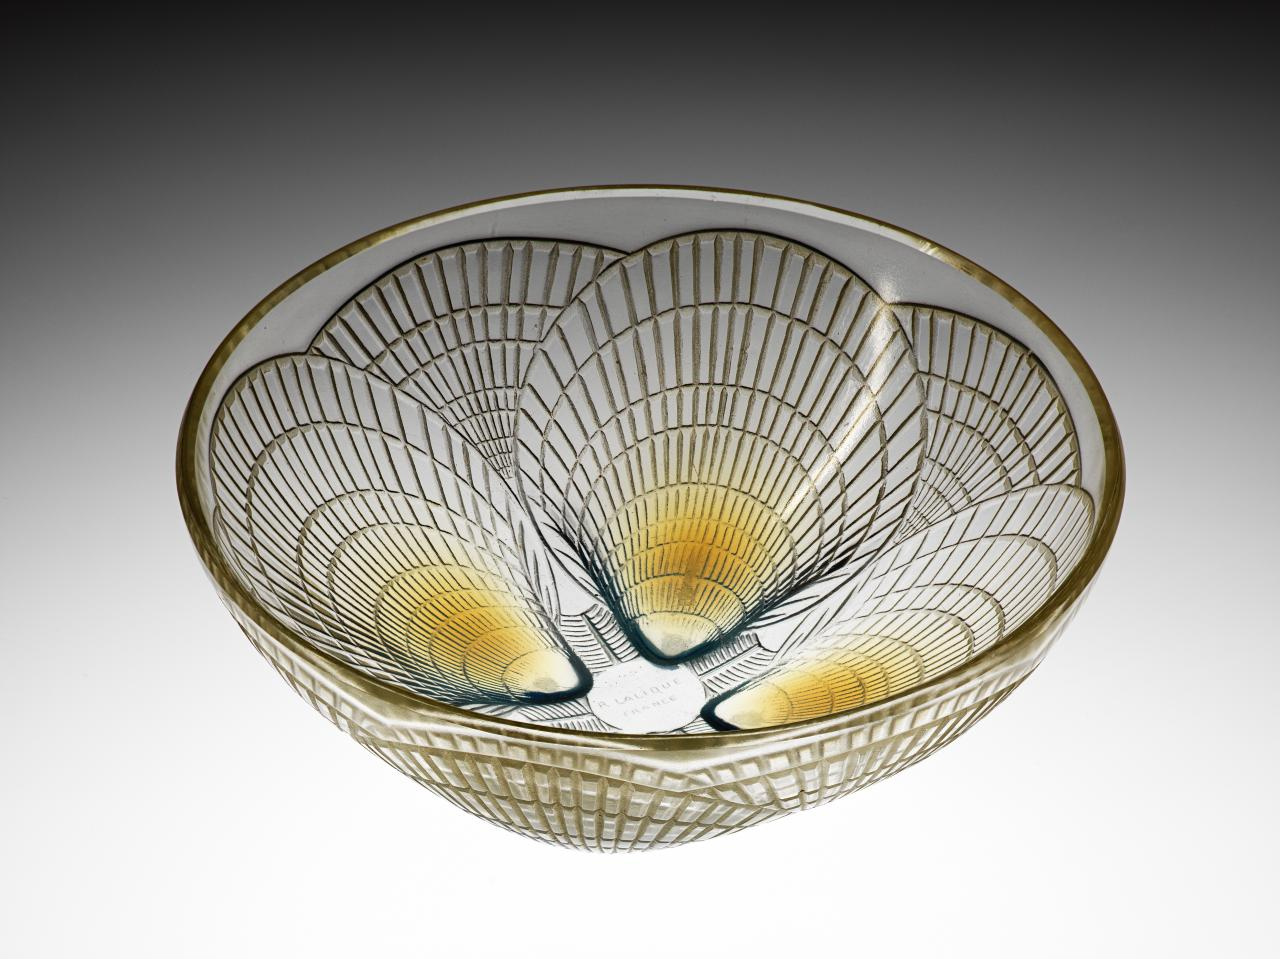 Scallop shell no.1, bowl